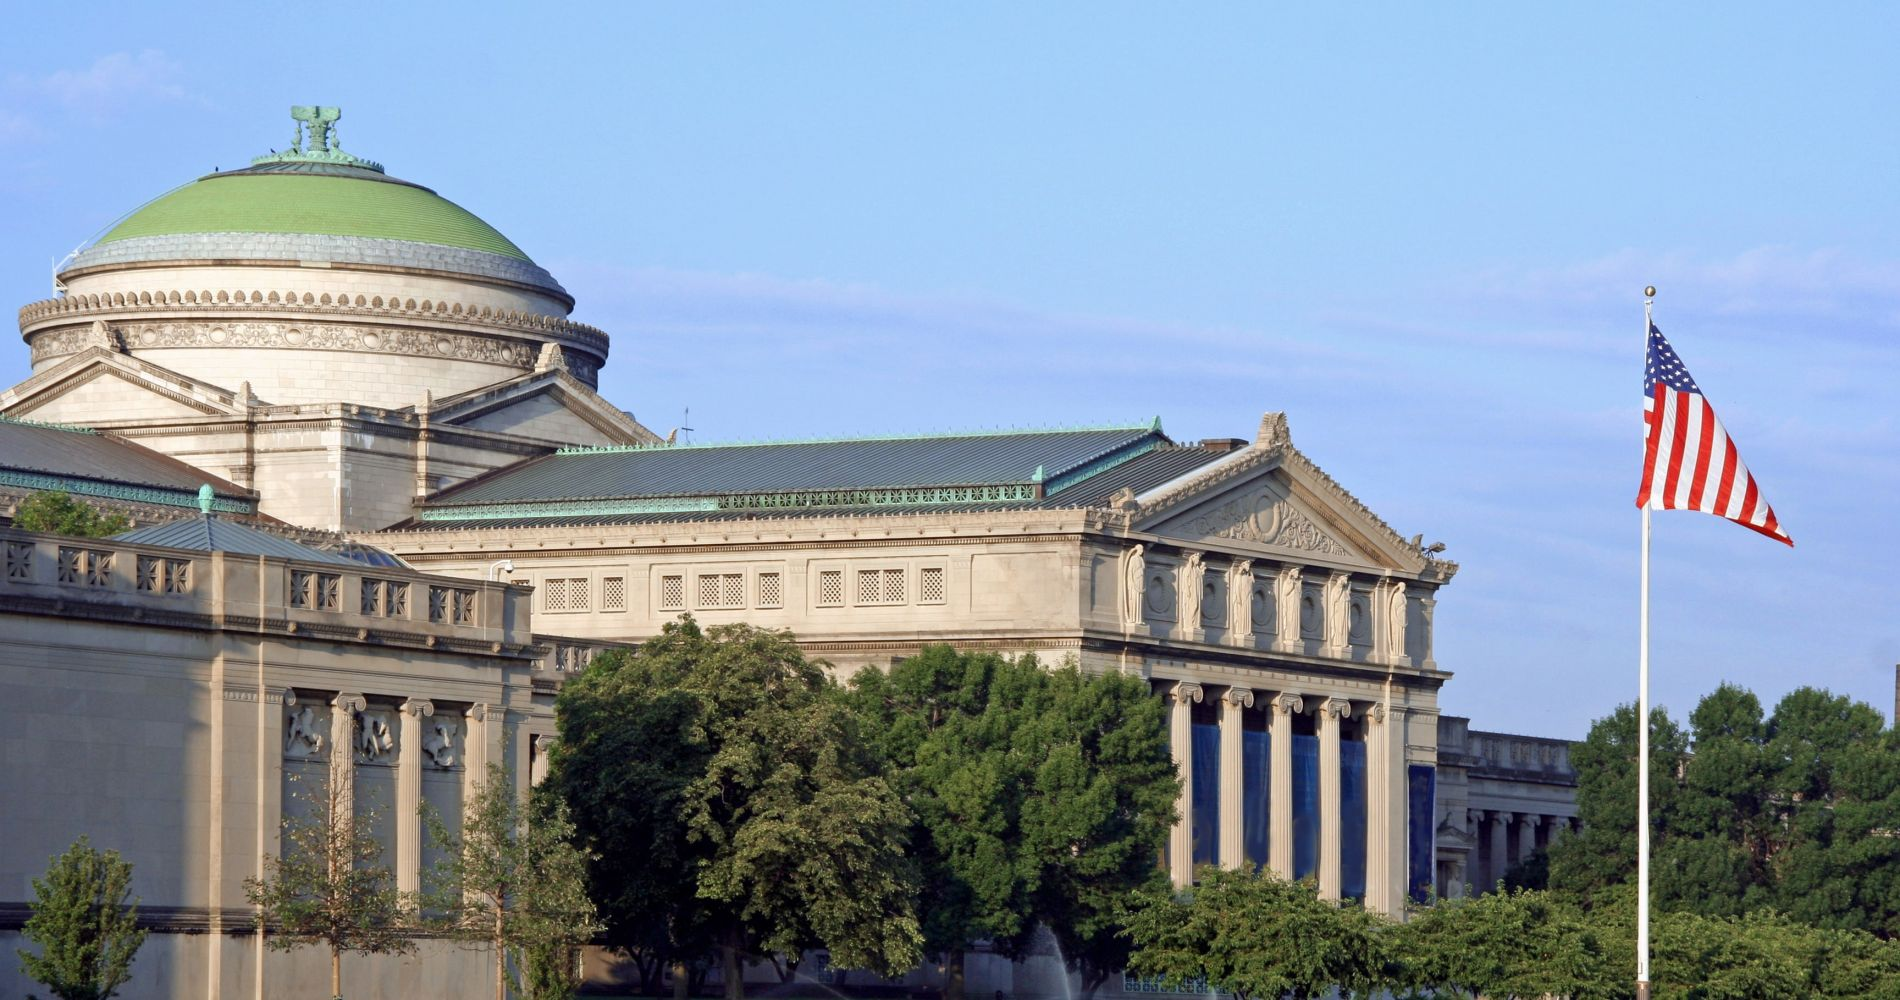 The Best Chicago including Museum of Science and Industry for Two